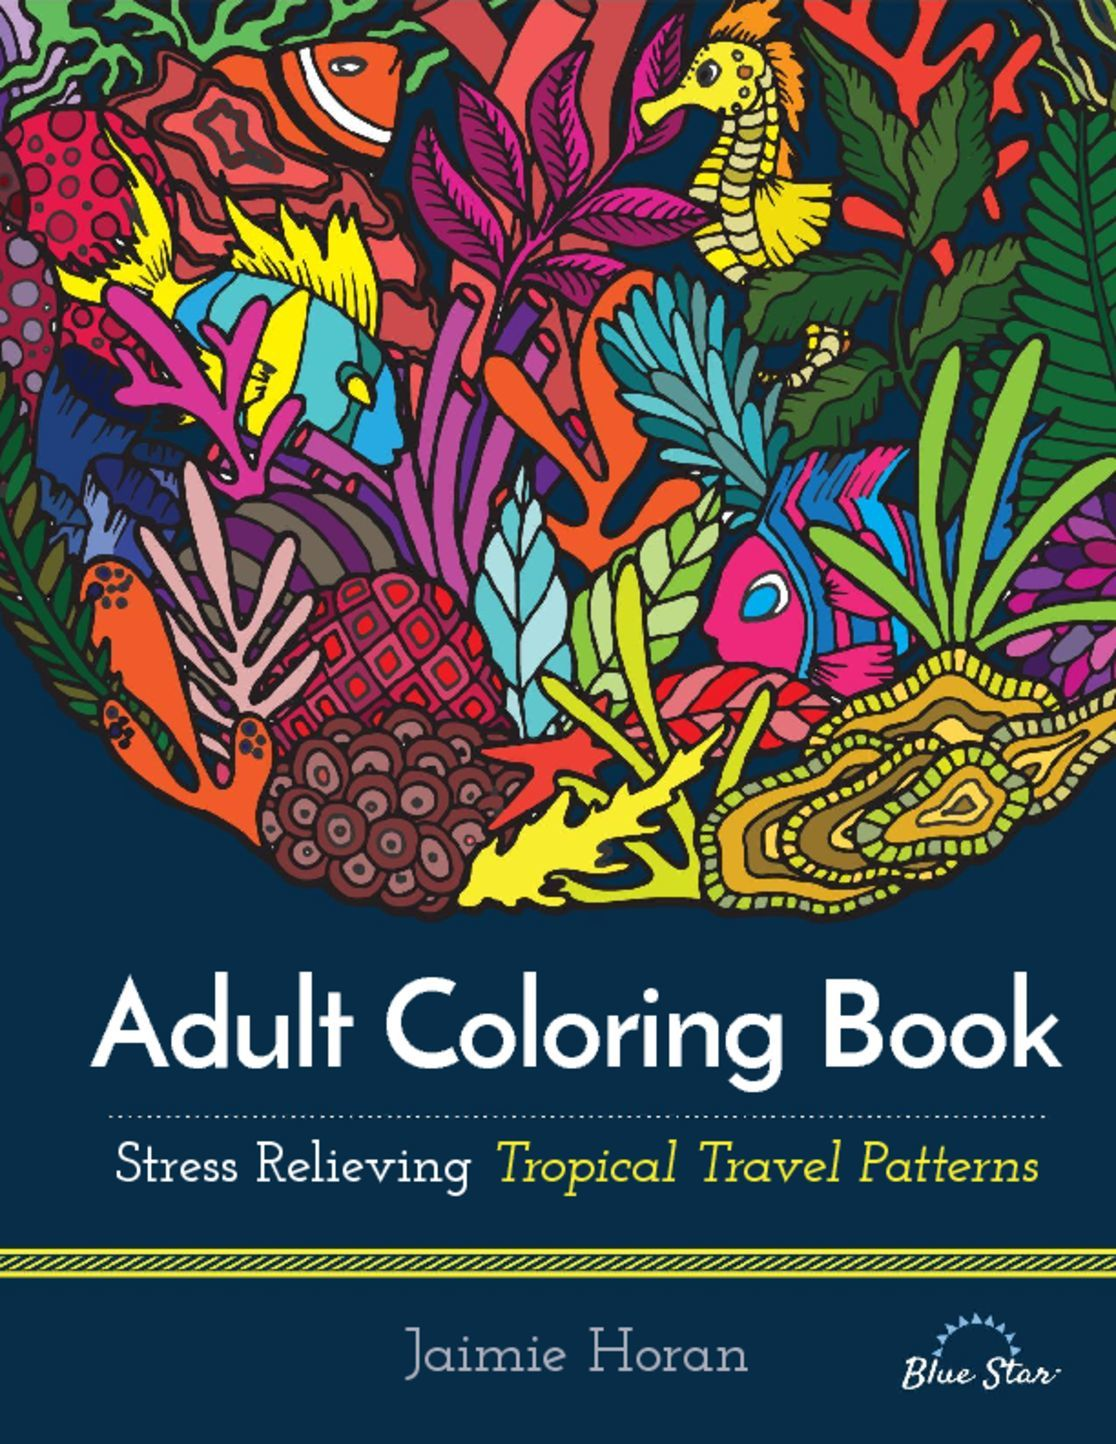 Adult Coloring Book Stress Relieving Tropical Travel Patterns Digital